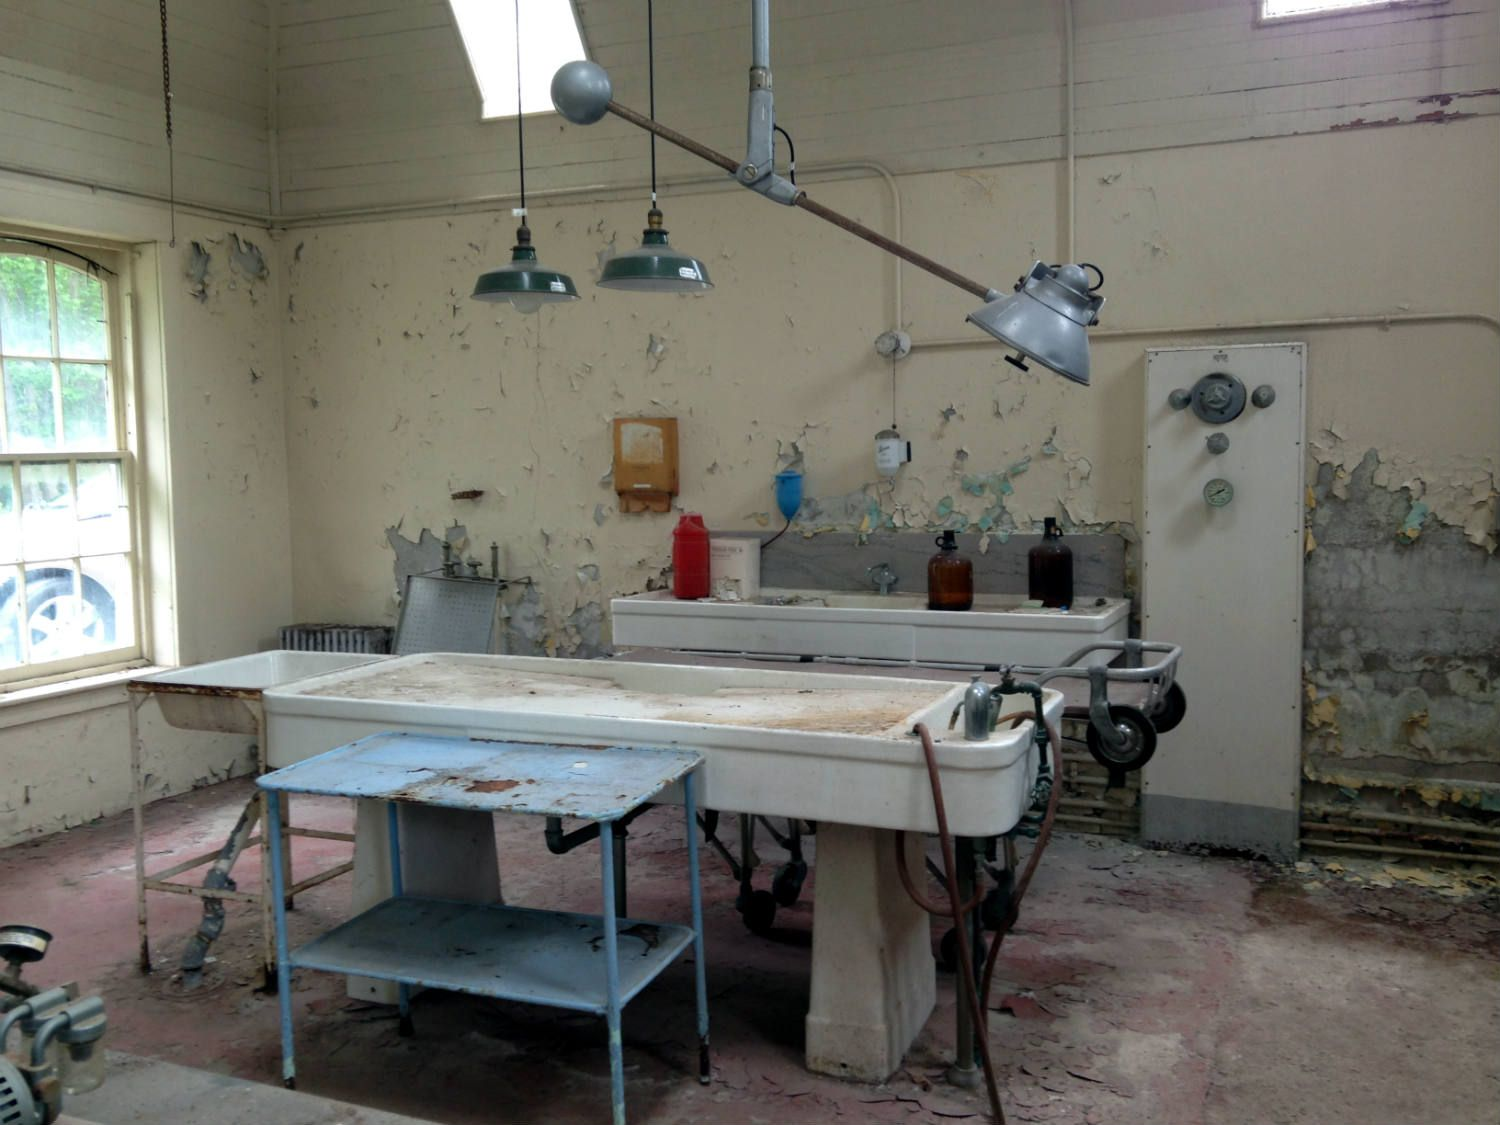 Morgue and Embalming equipment at the abandoned Willard Asylum for